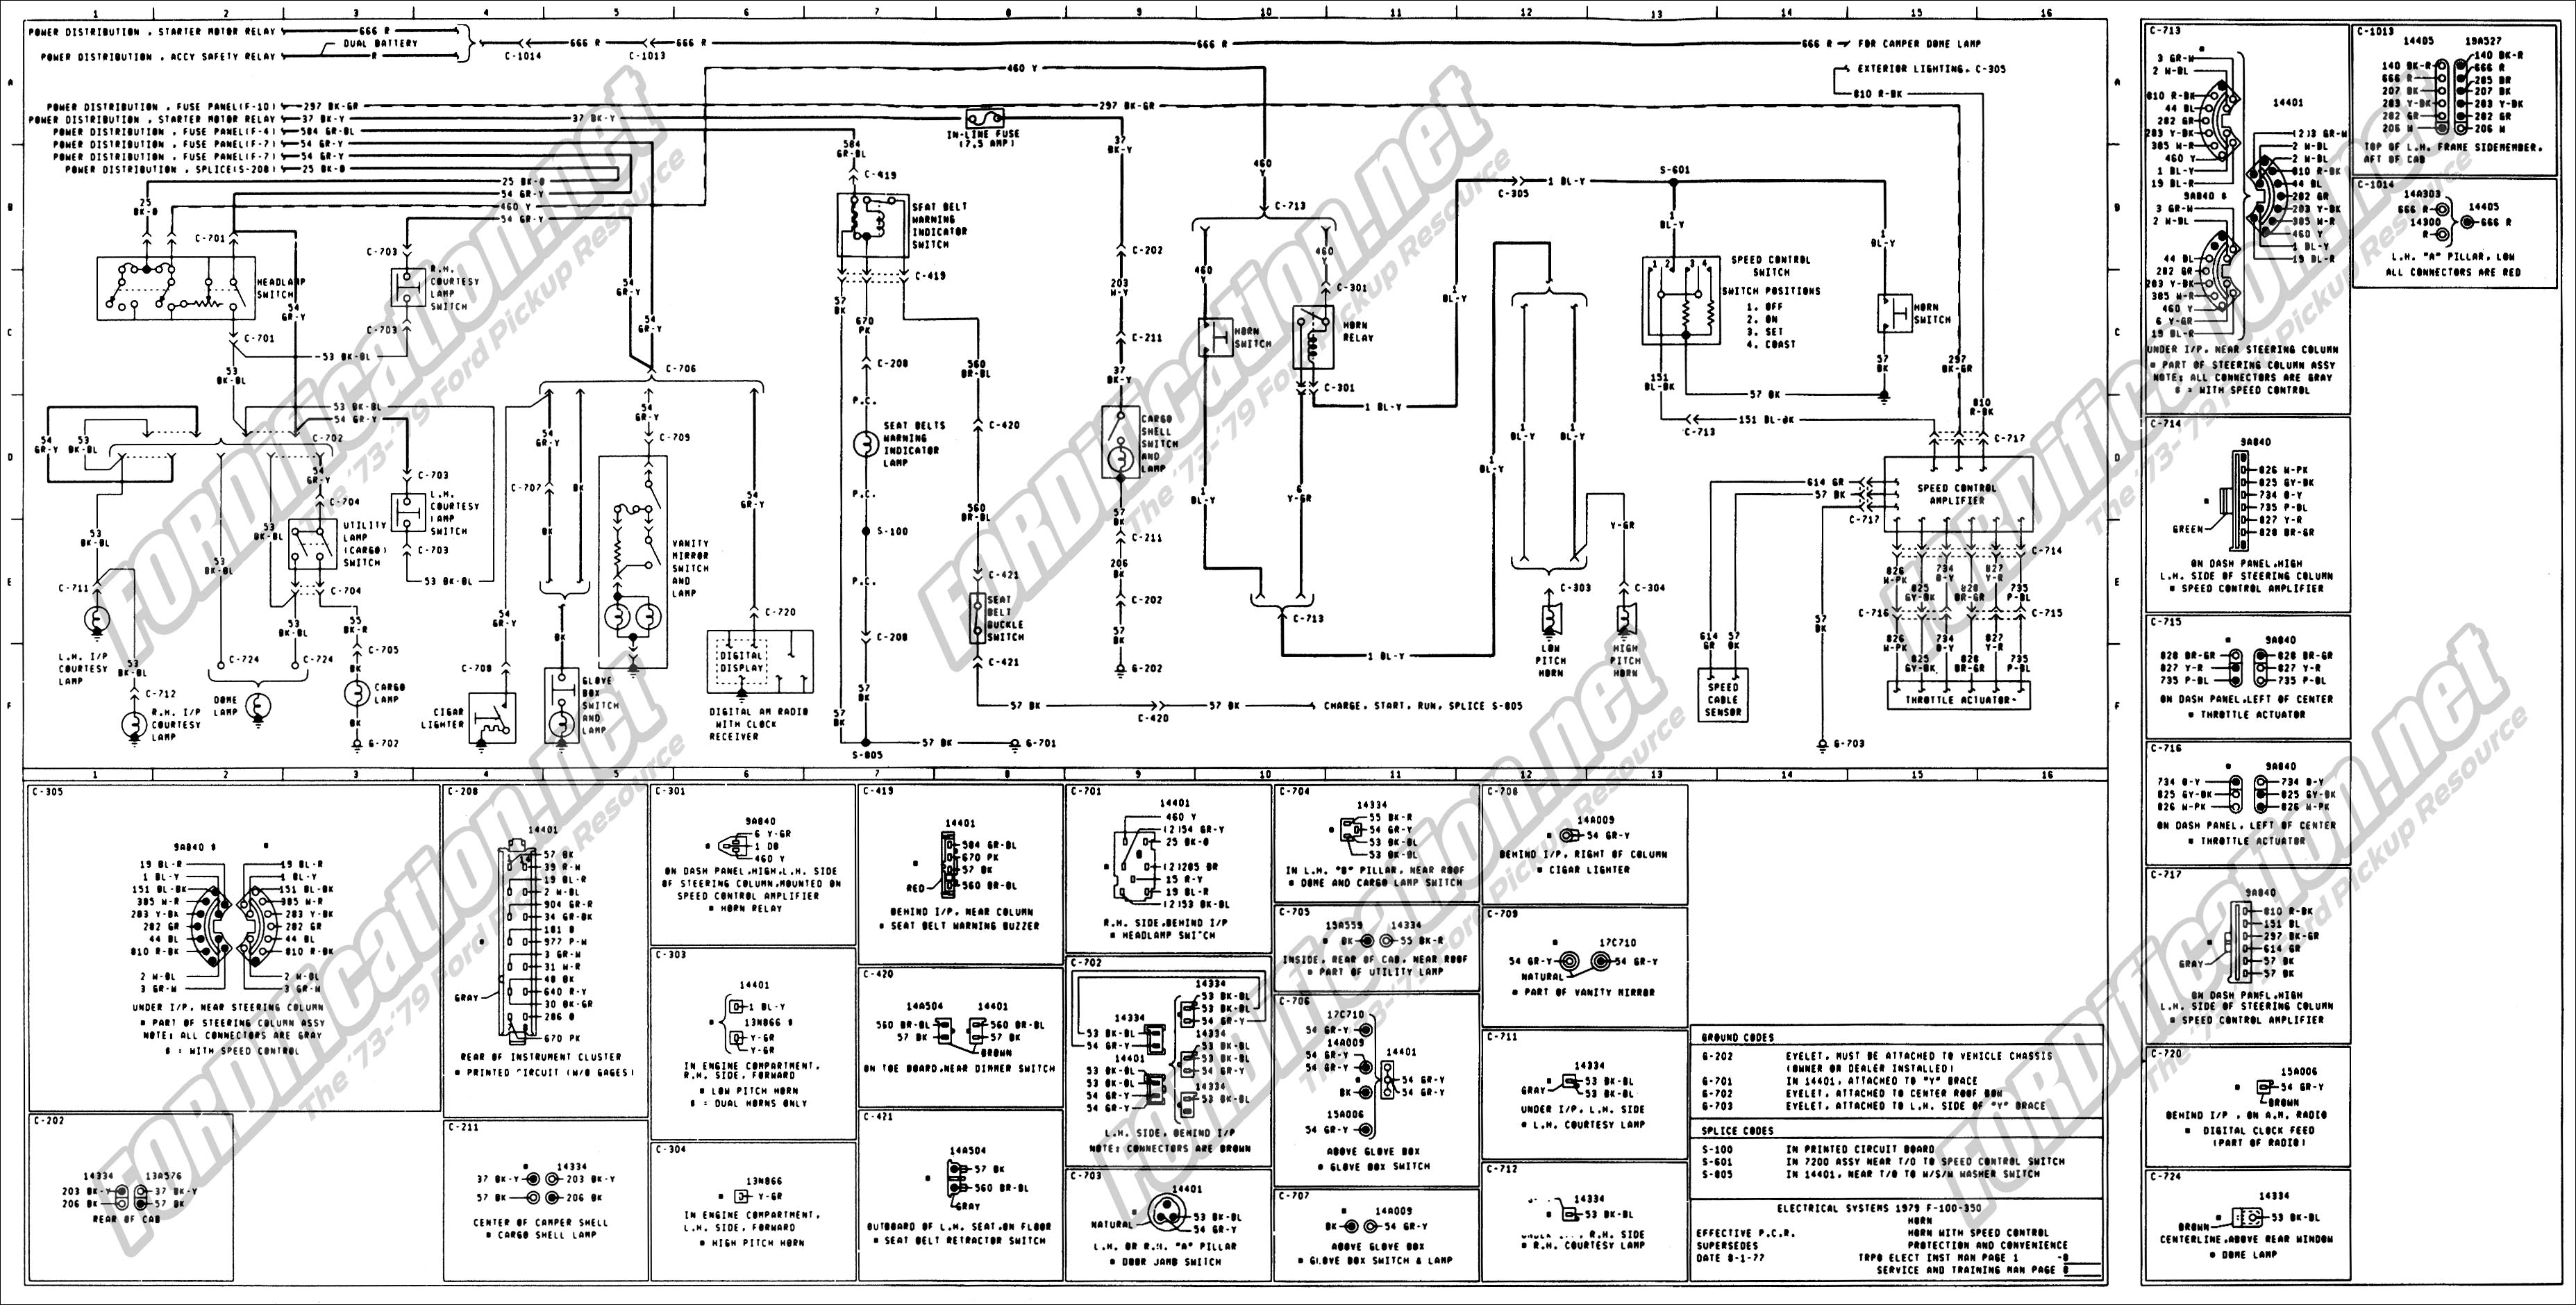 1977 Ford Wiring Harness Diagram Schematics Chevy 350 Engine 1978 Sample Fuel Filter 1973 1979 Truck